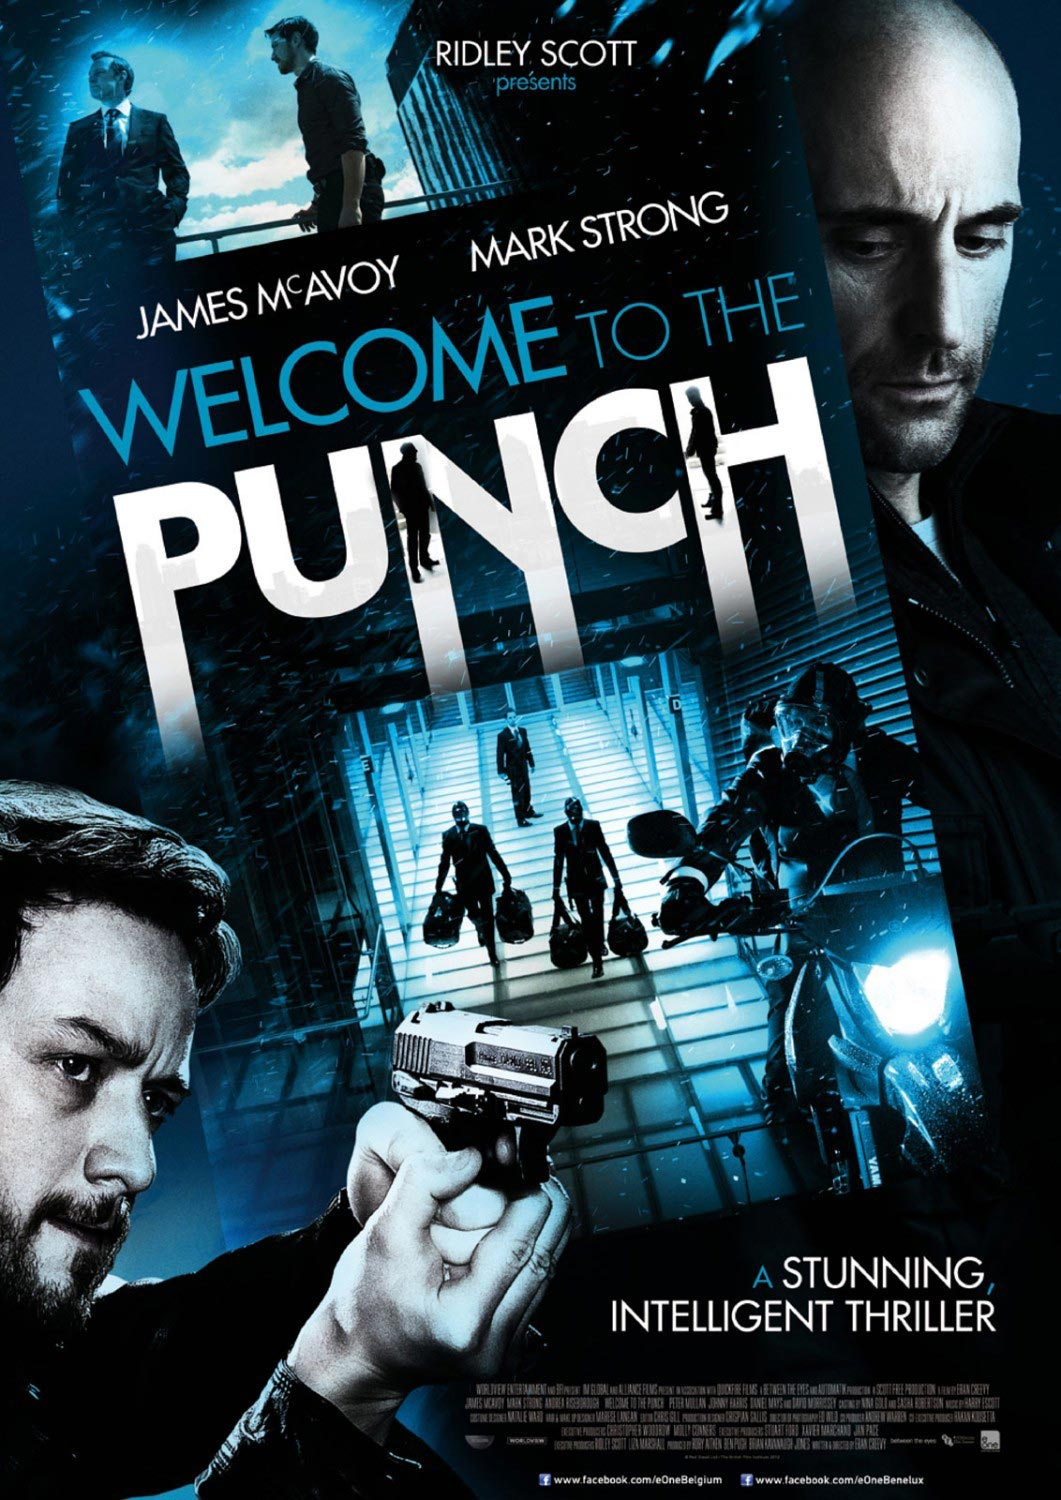 https://i2.wp.com/www.filmofilia.com/wp-content/uploads/2013/03/welcome_to_the_punch_poster.jpg